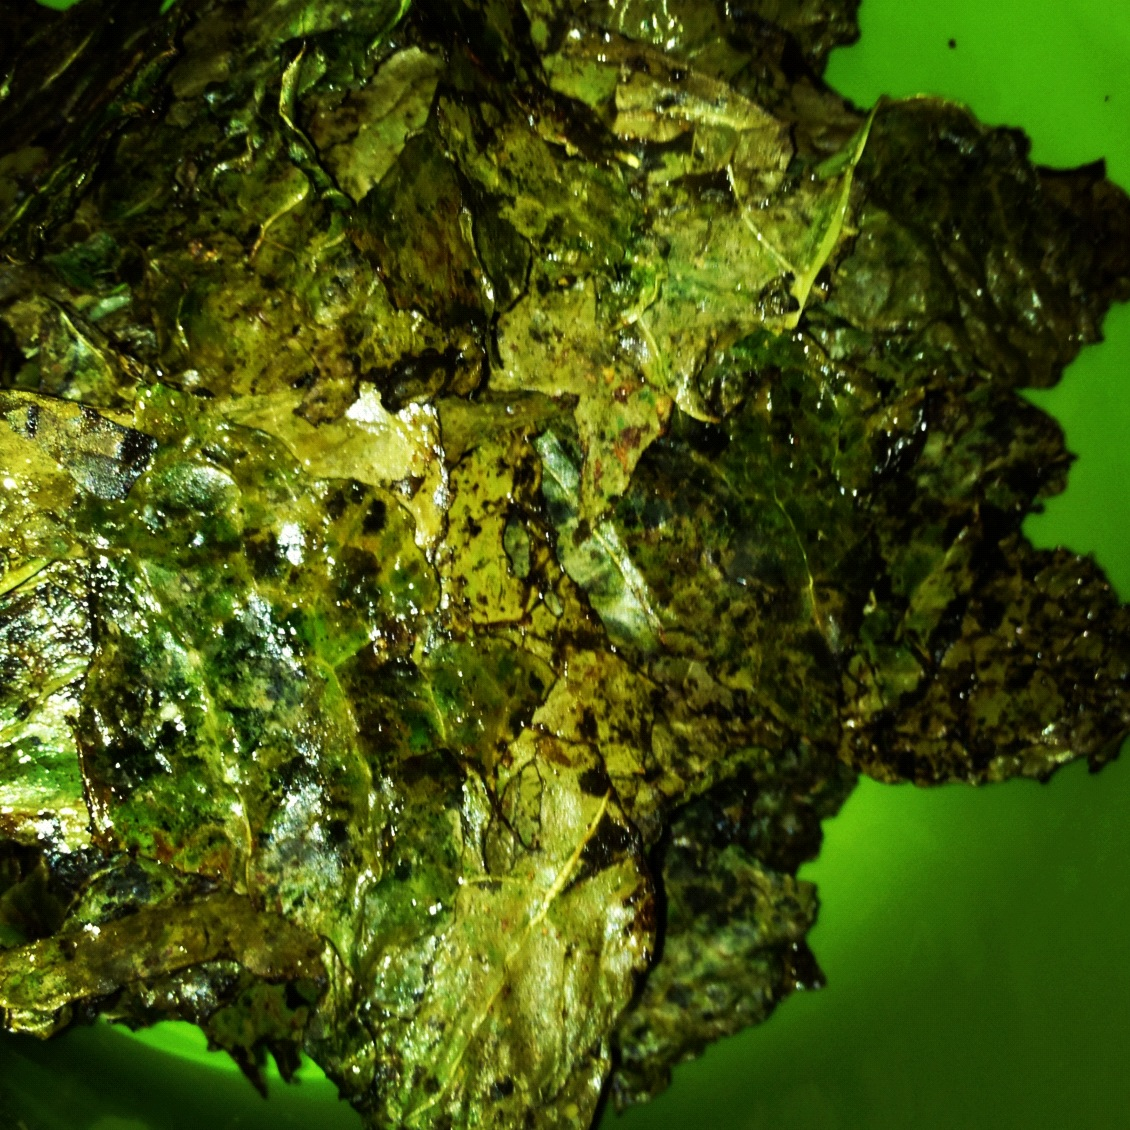 Baked Kale Chips with Sea Salt and Lemon